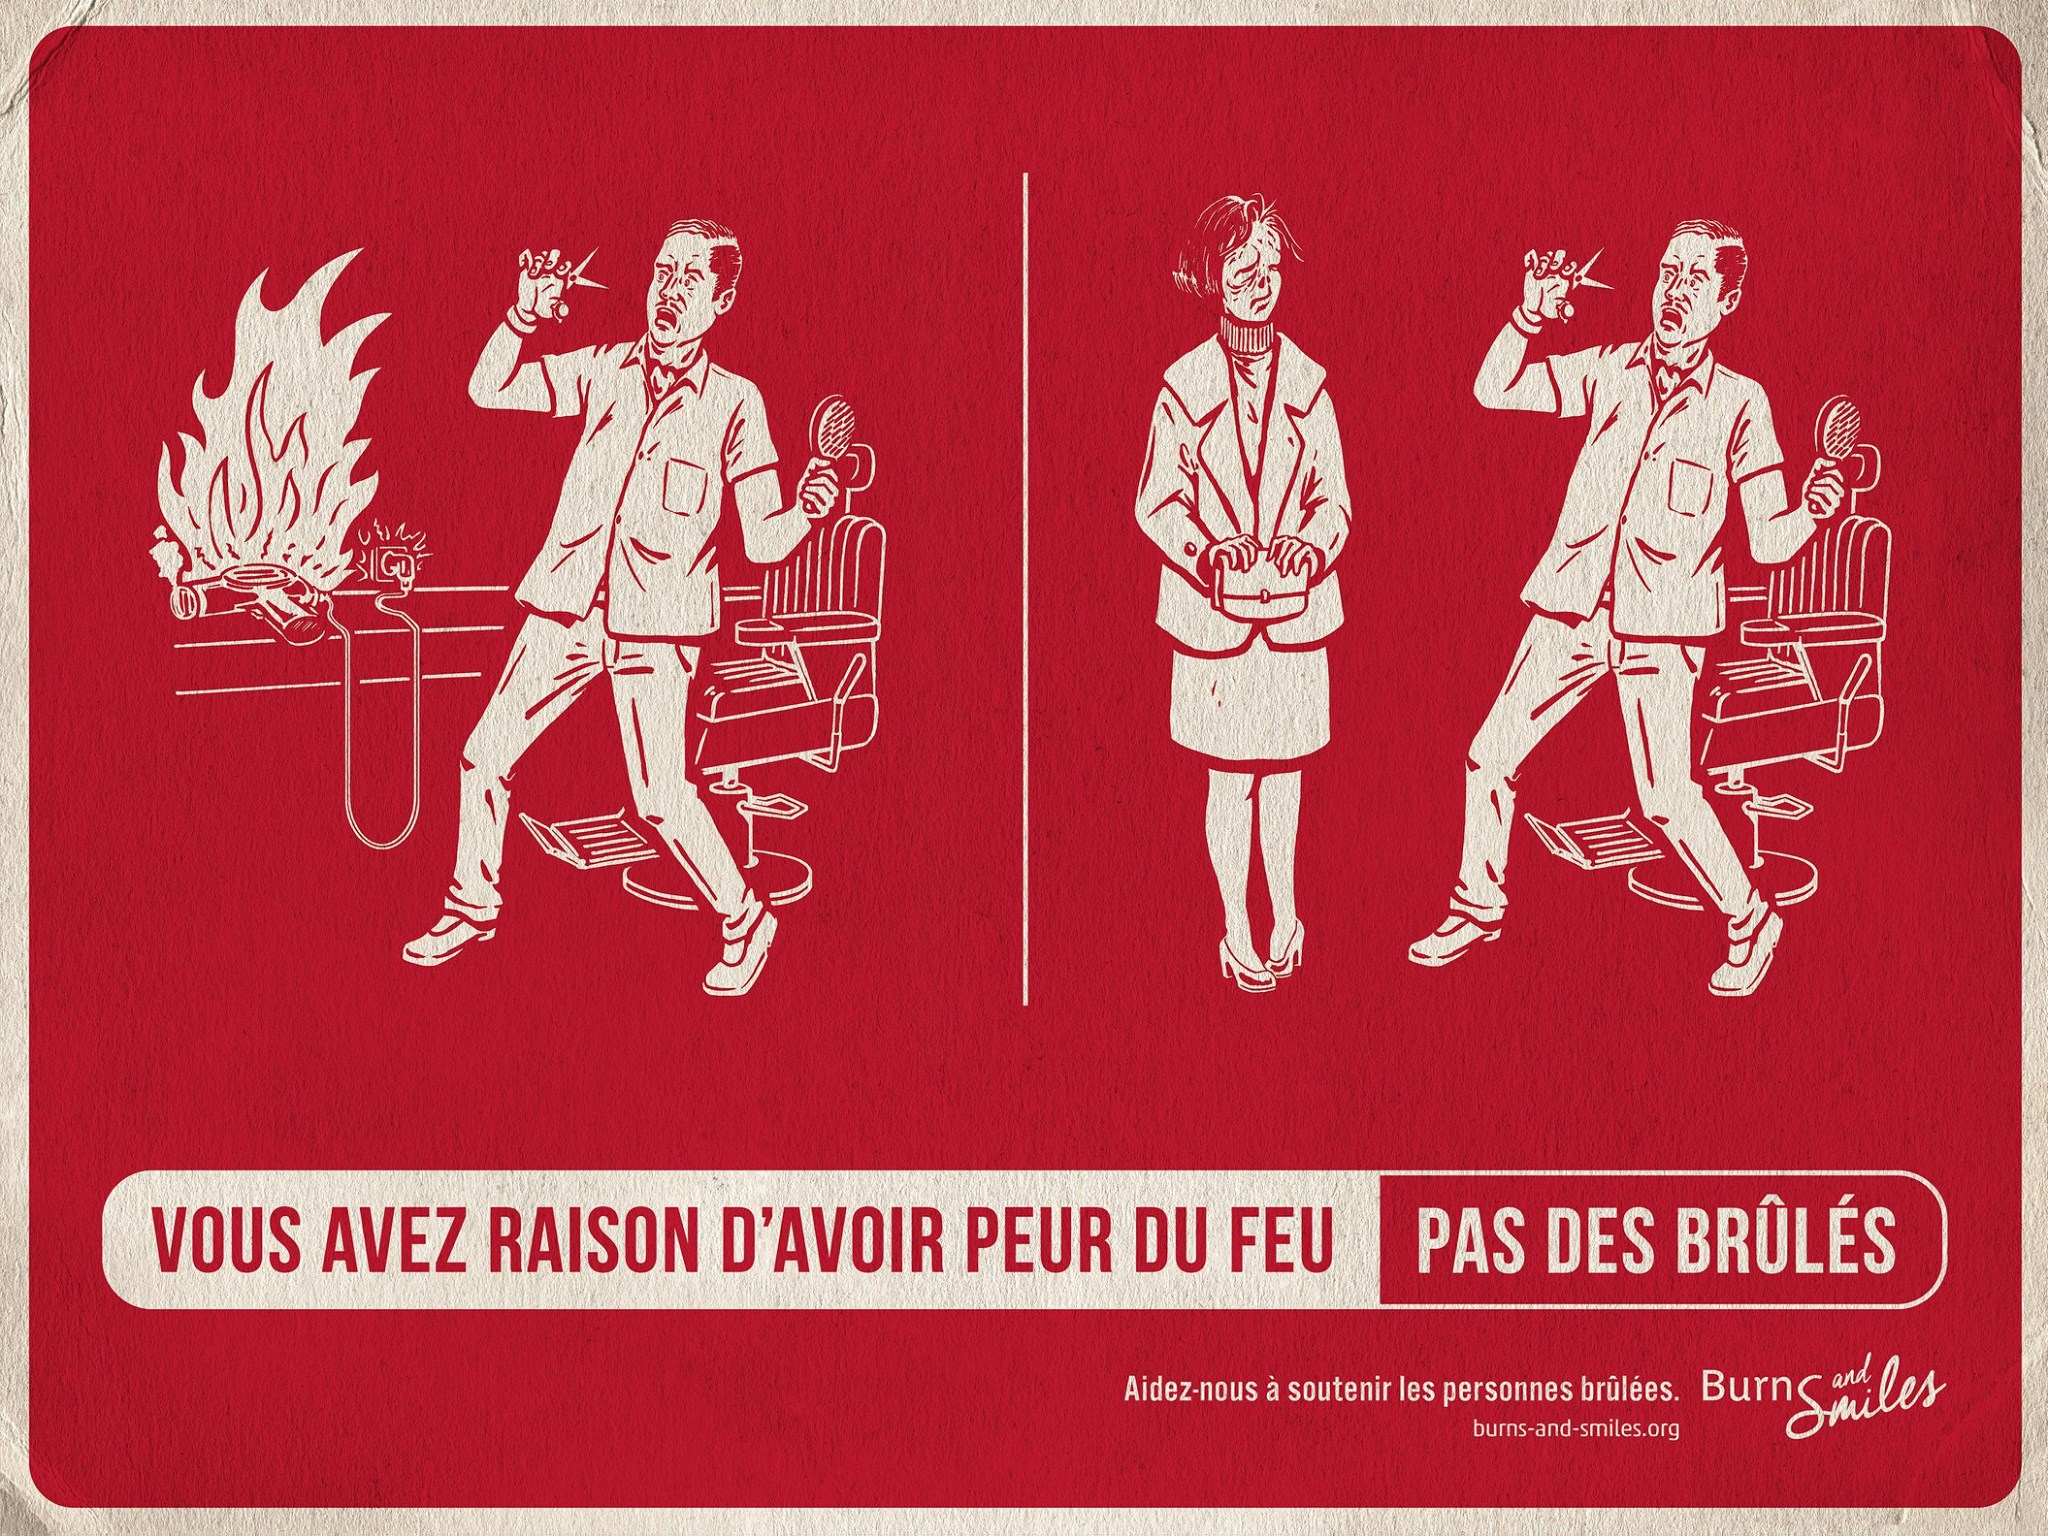 burns-and-smiles-publicite-communication-print-press-ad-feu-brules-burn-agence-tbwa-paris-1